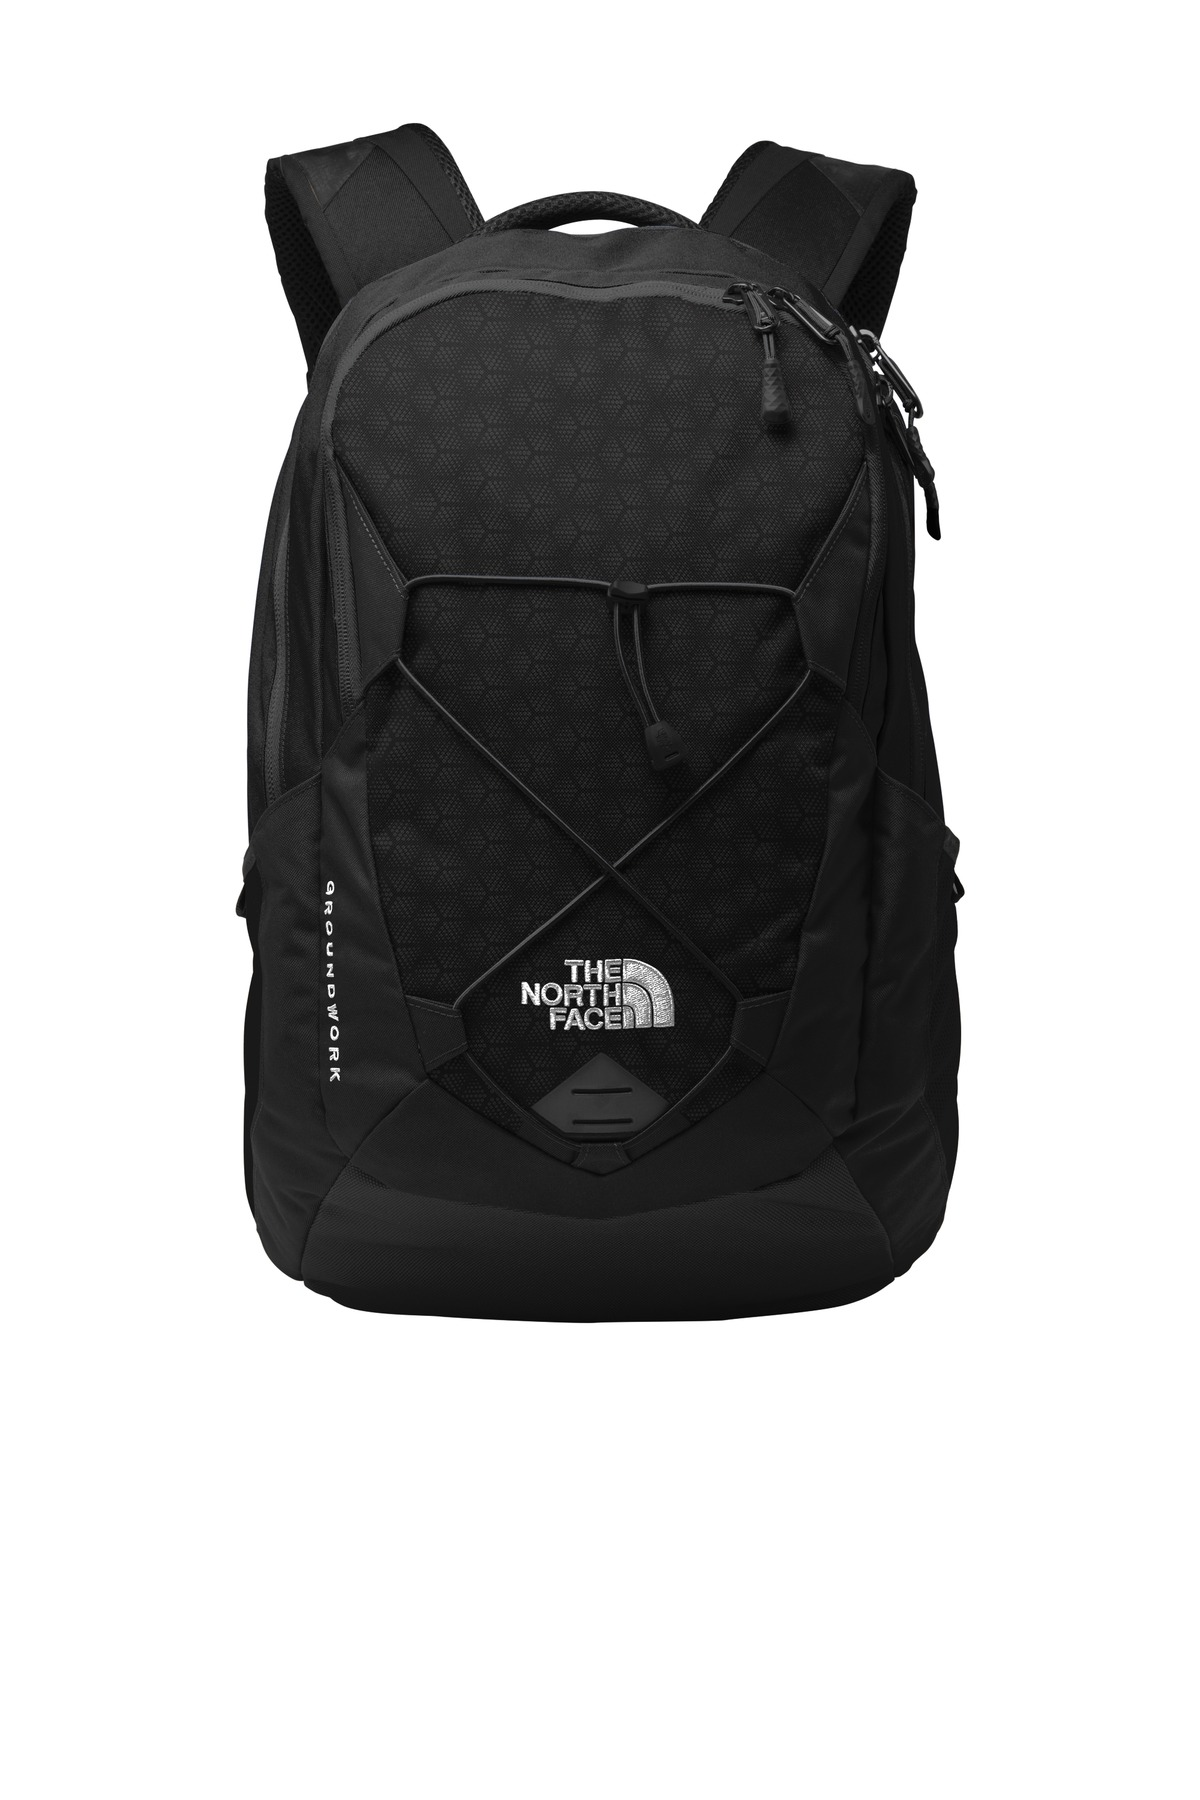 The North Face  ®  Groundwork Backpack. NF0A3KX6 - TNF Black